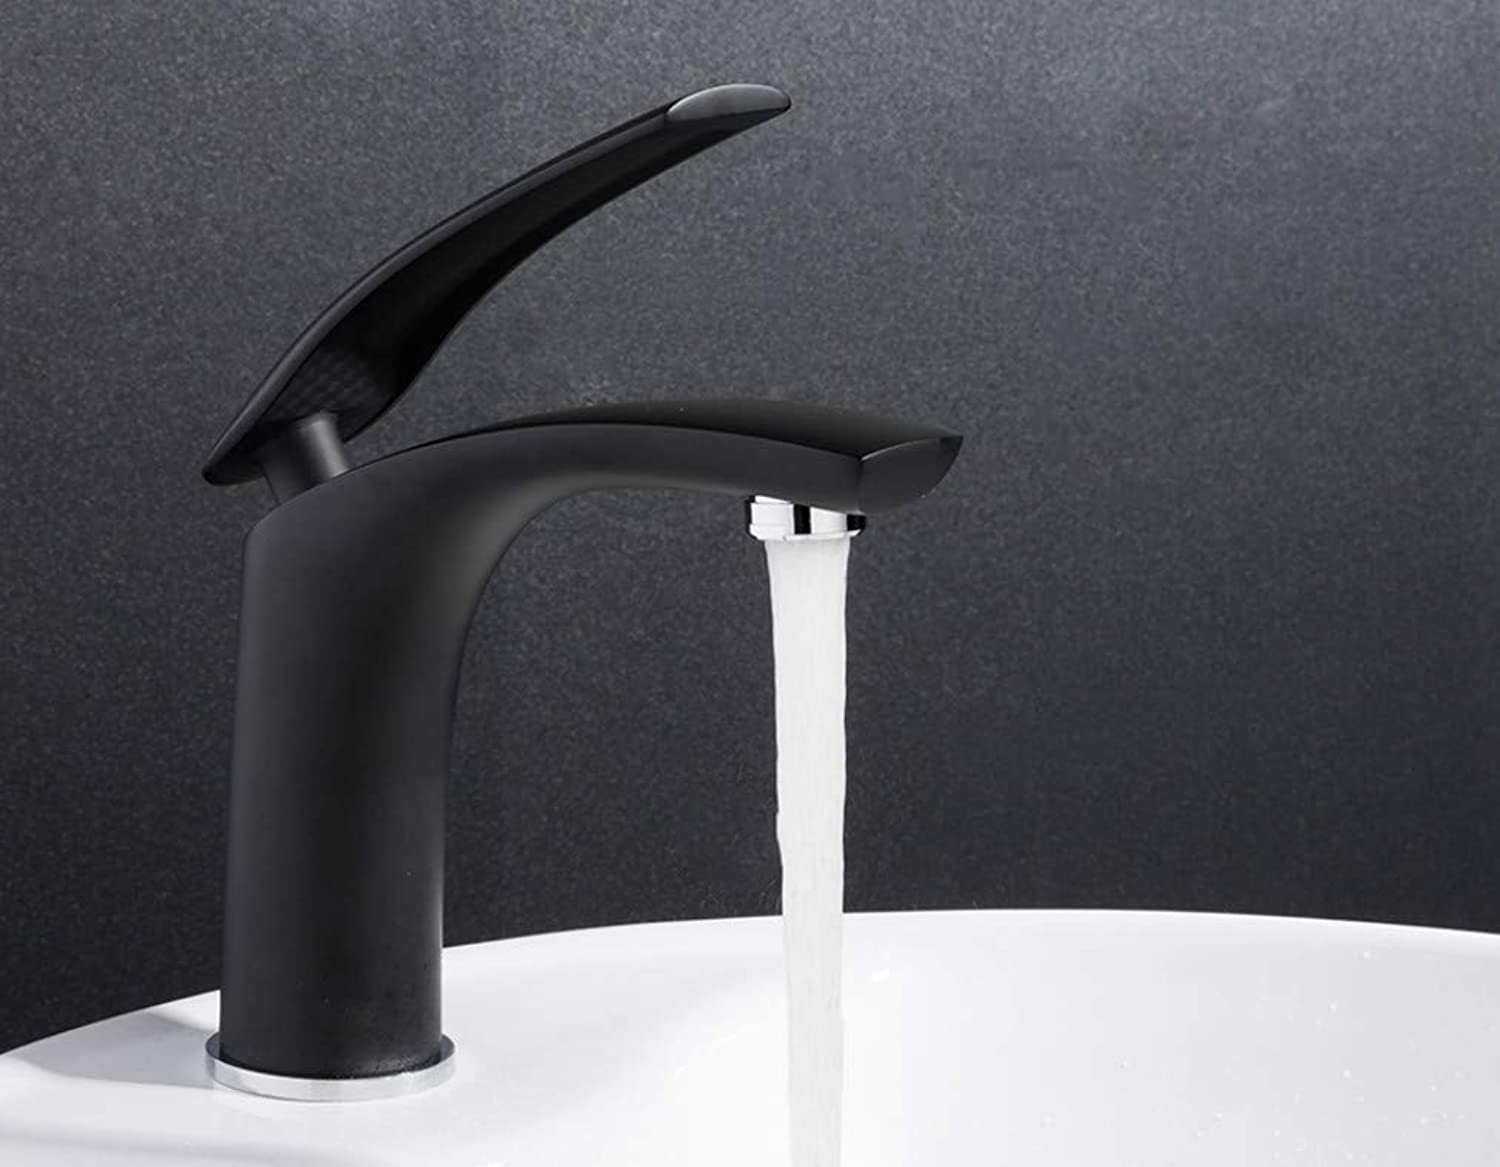 Marcu HOME Taps Bathroom Faucet Black Solid Brass Bathroom Basin Fauce Single Handle Waterfall Basin Hot & Cold Water Mixer Sink Tap Taps